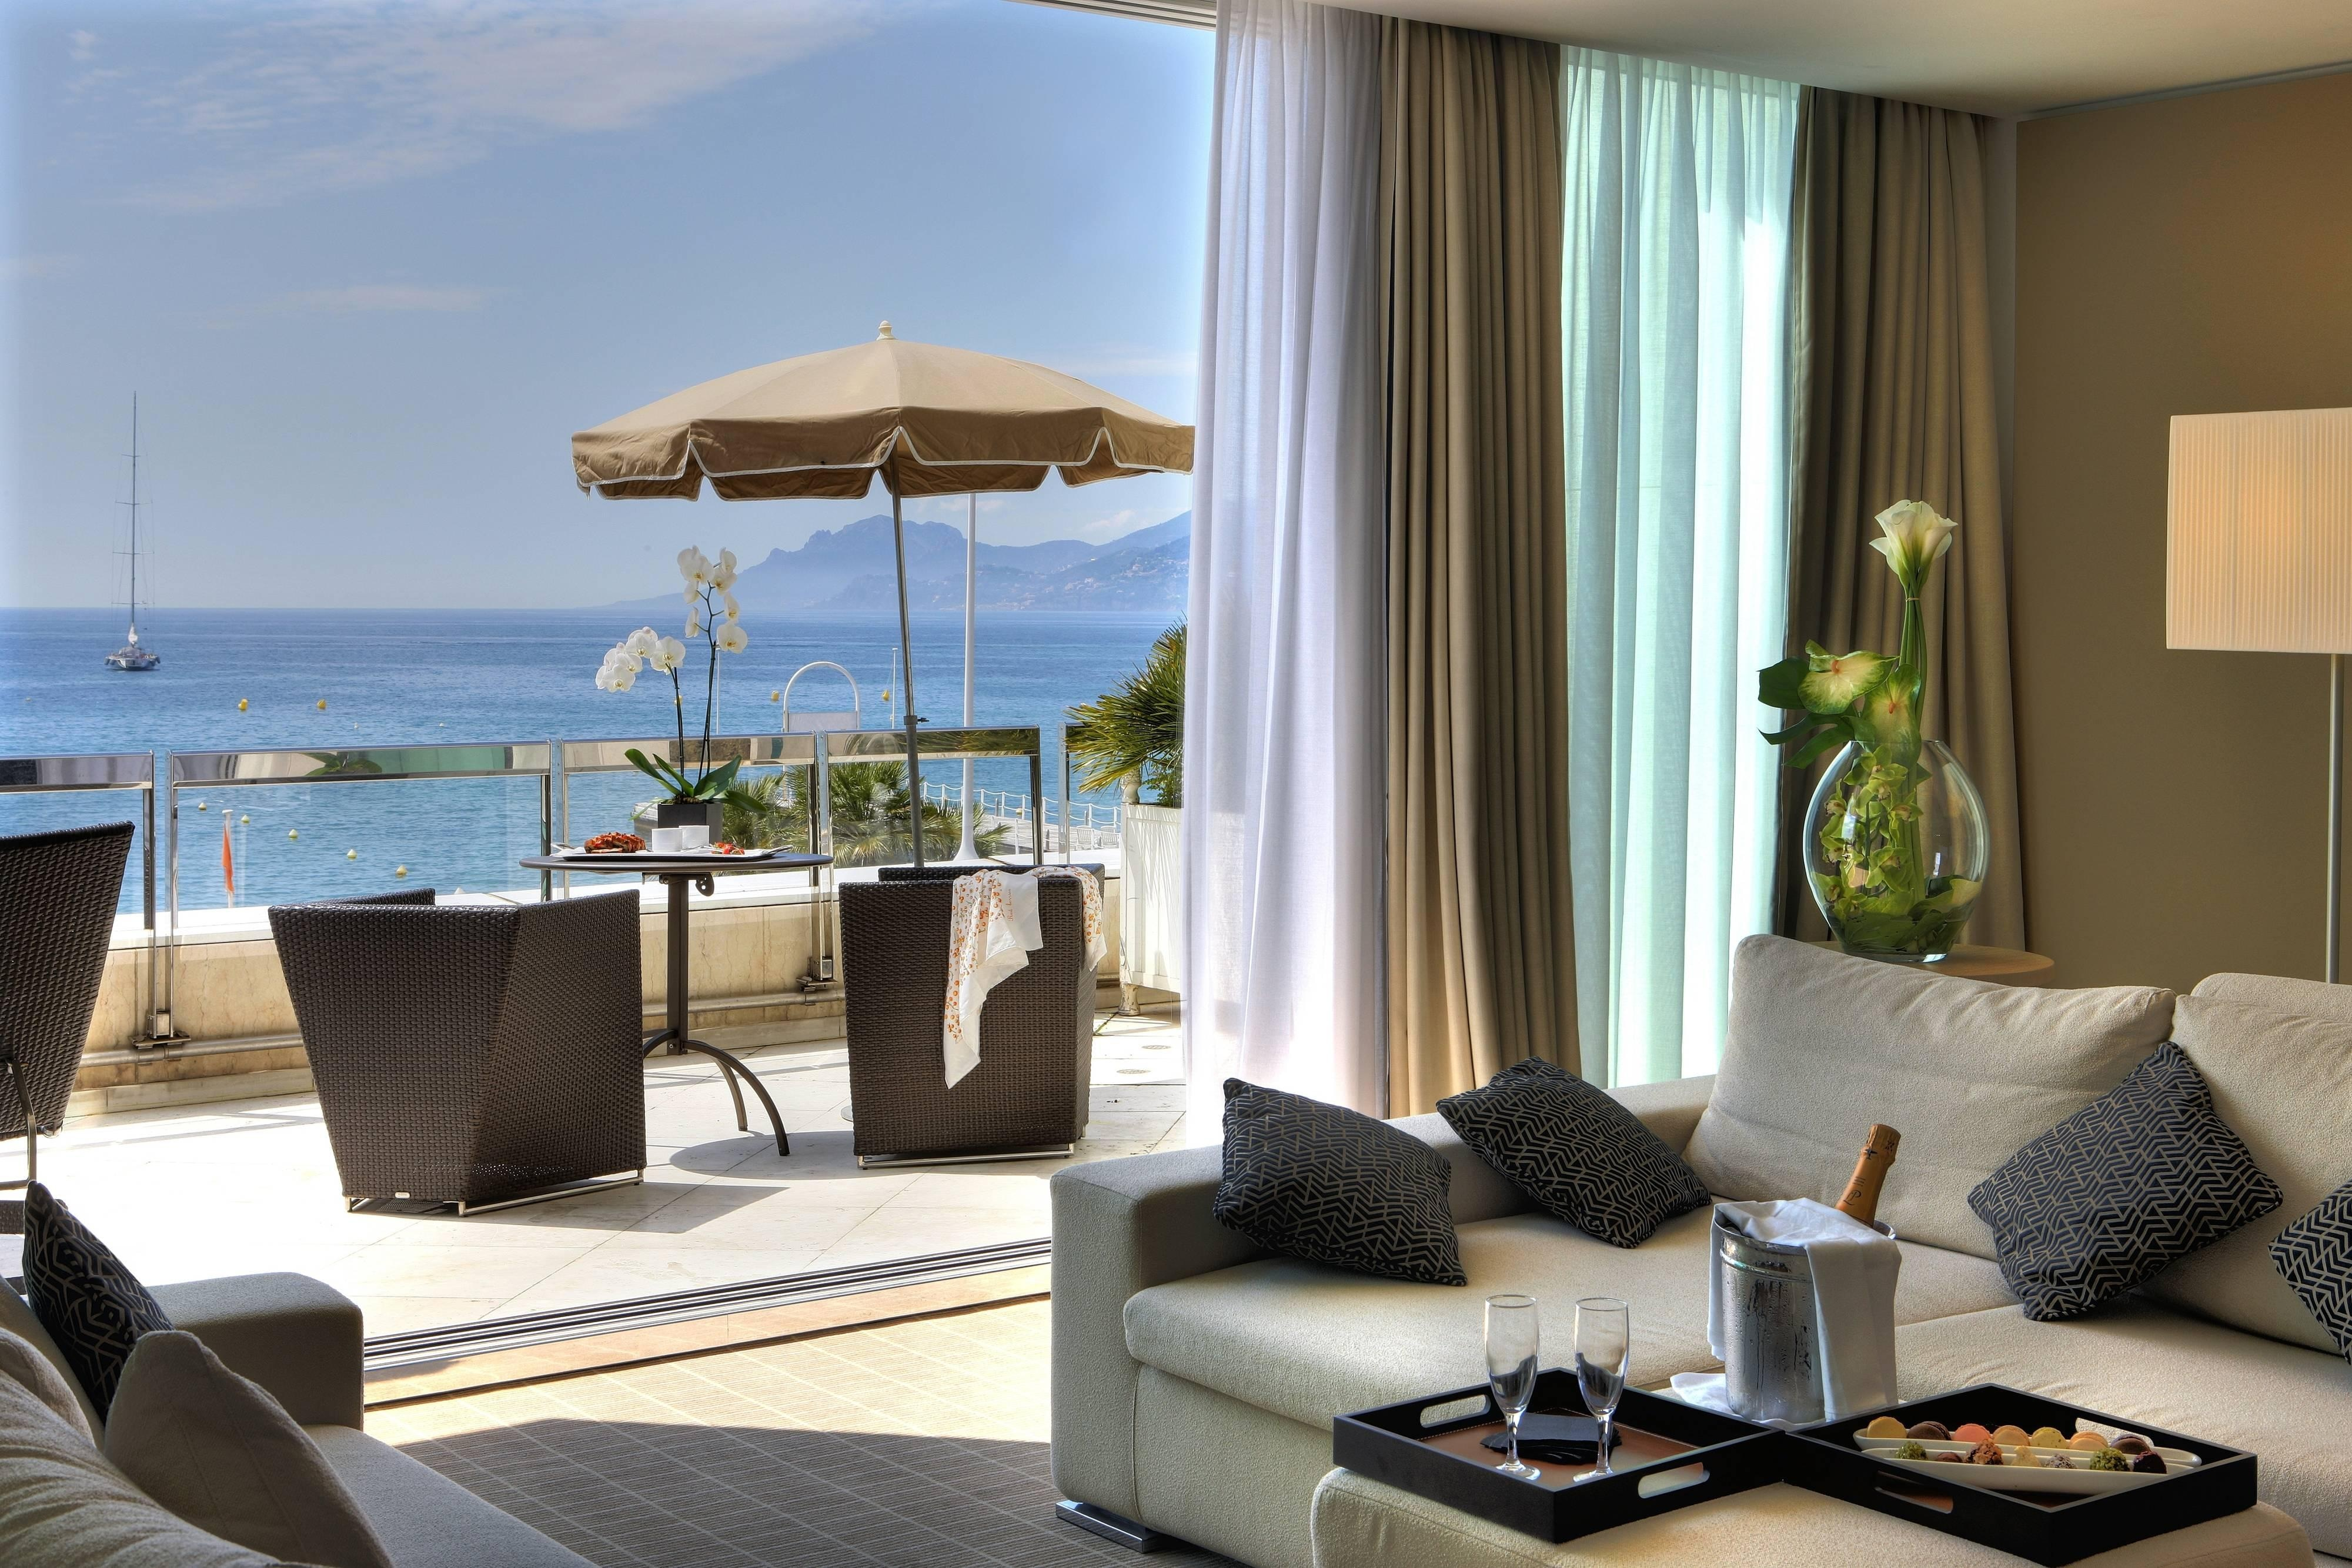 Marriott Hotel Cannes France